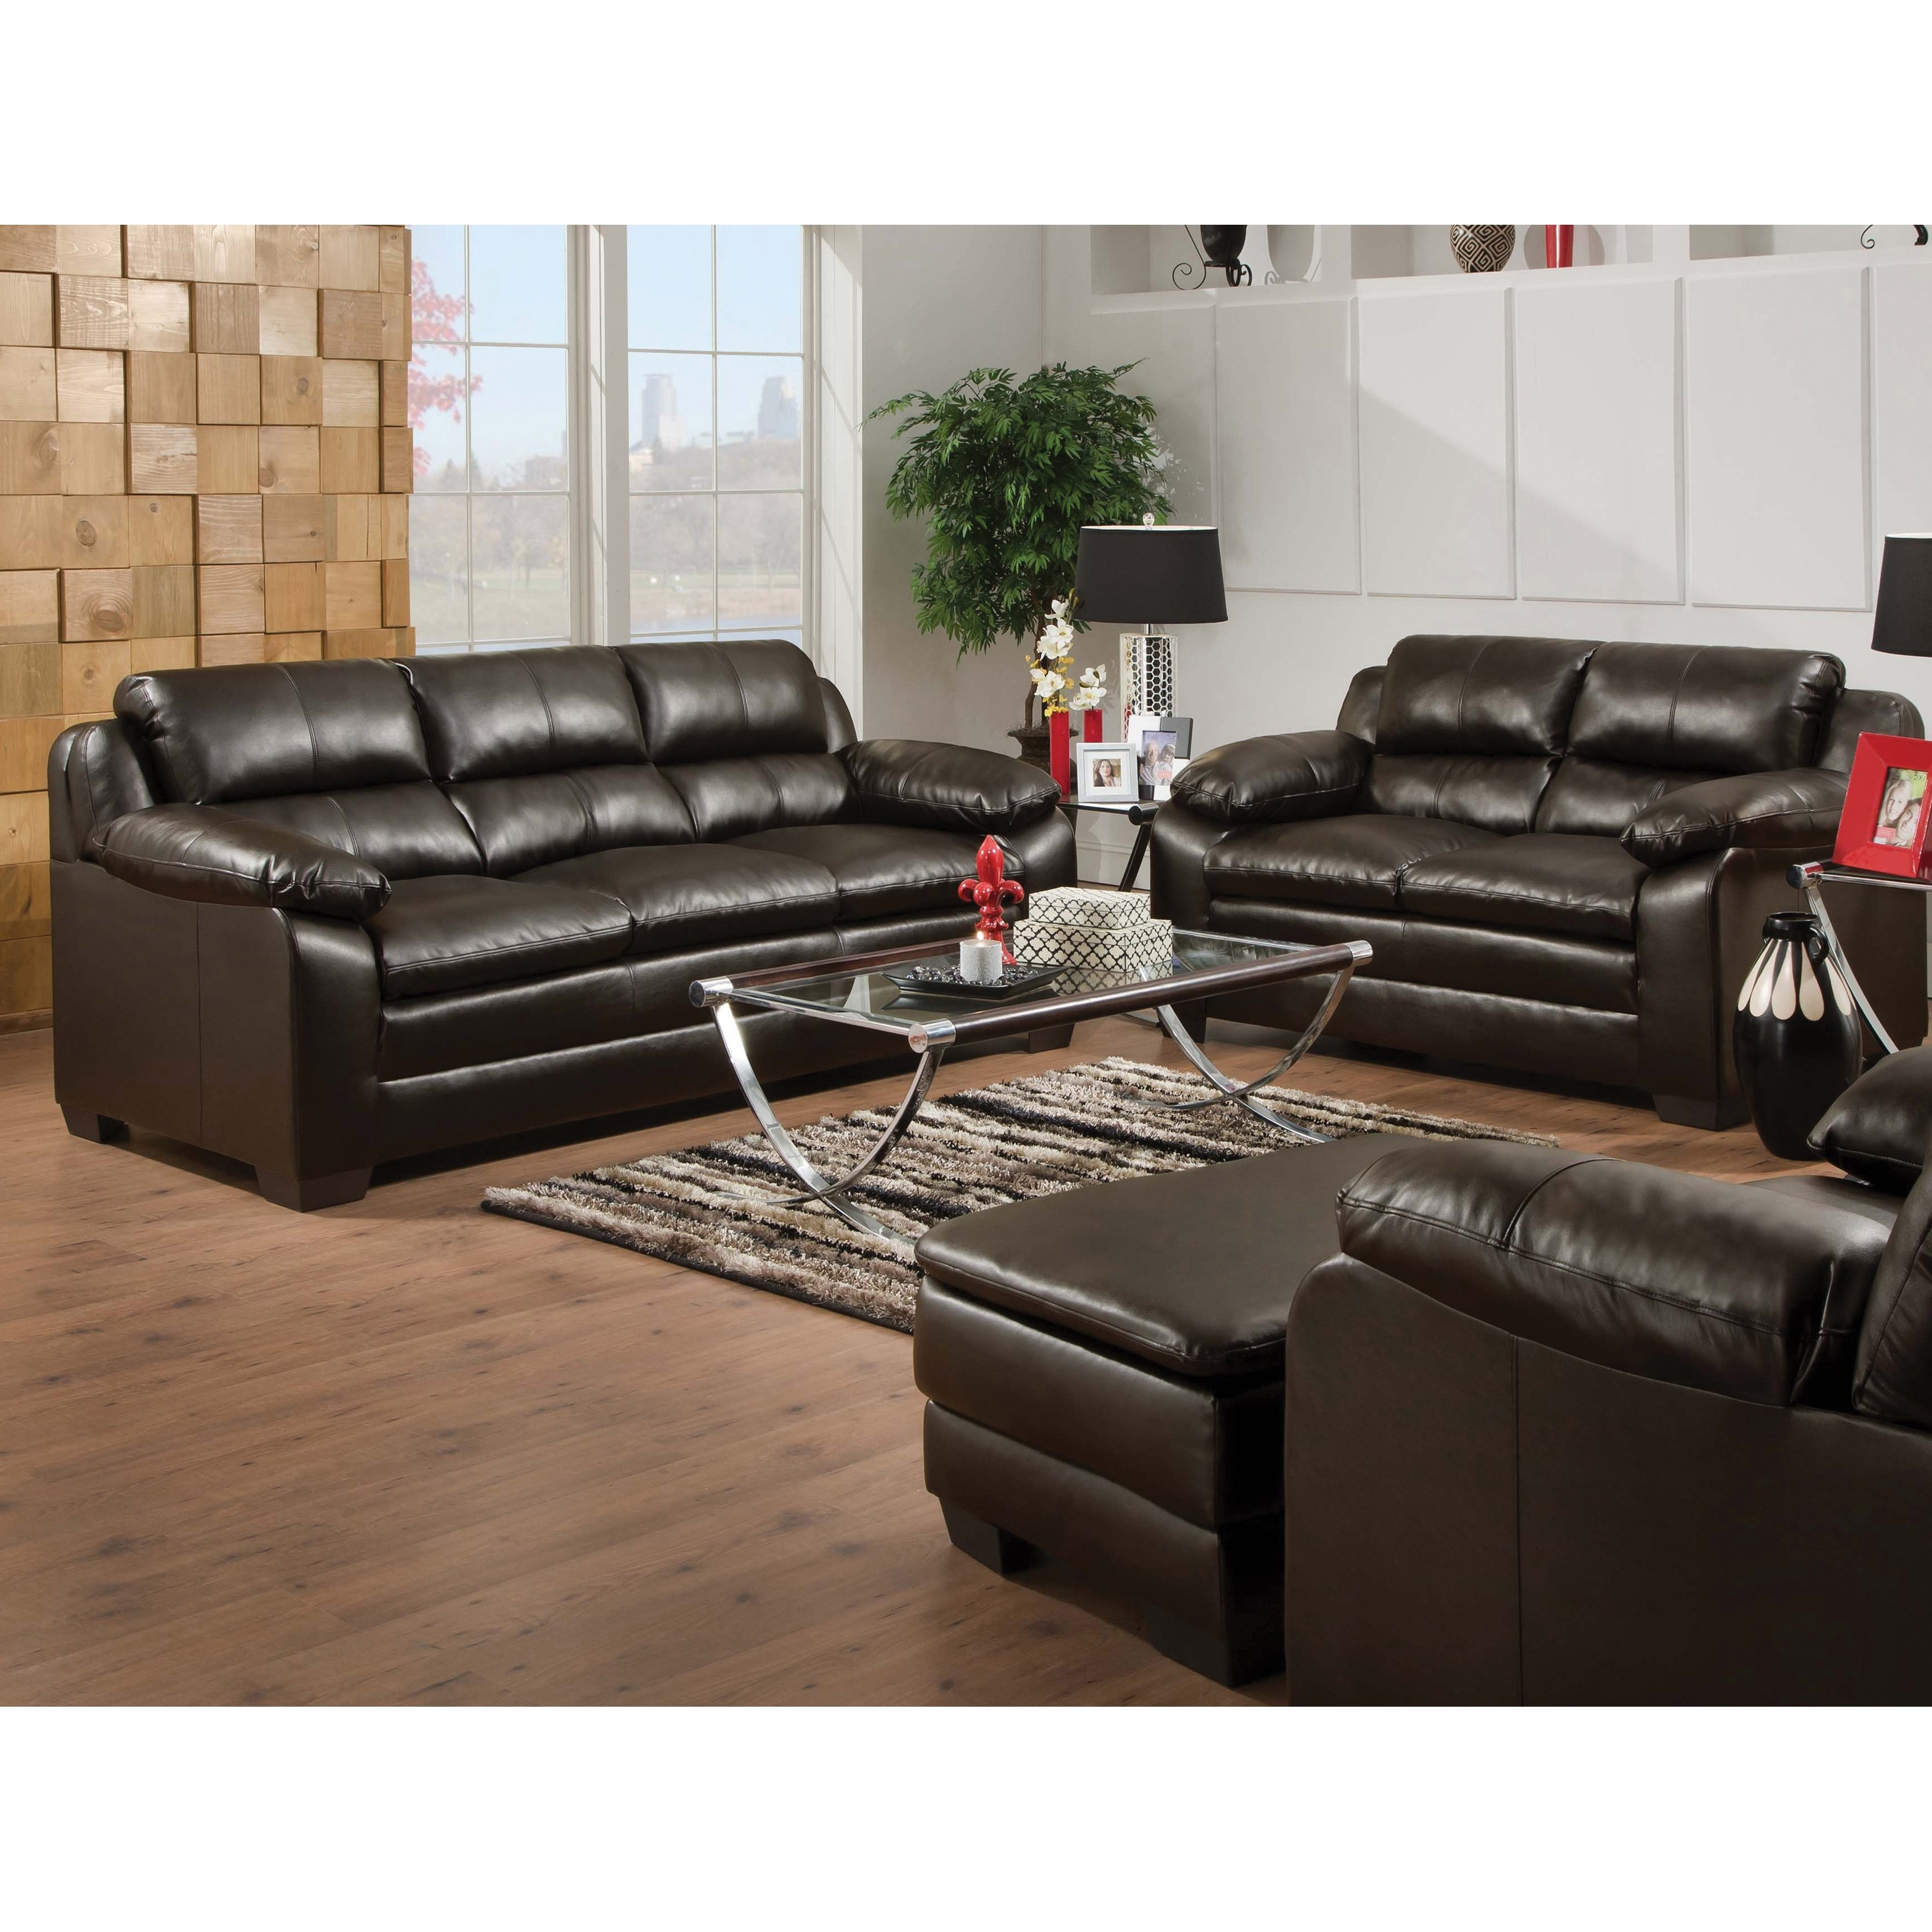 Shop Art Van Maddox Espresso Sofa And Loveseat Set – Free Shipping Inside Maddox Oversized Sofa Chairs (Image 20 of 25)